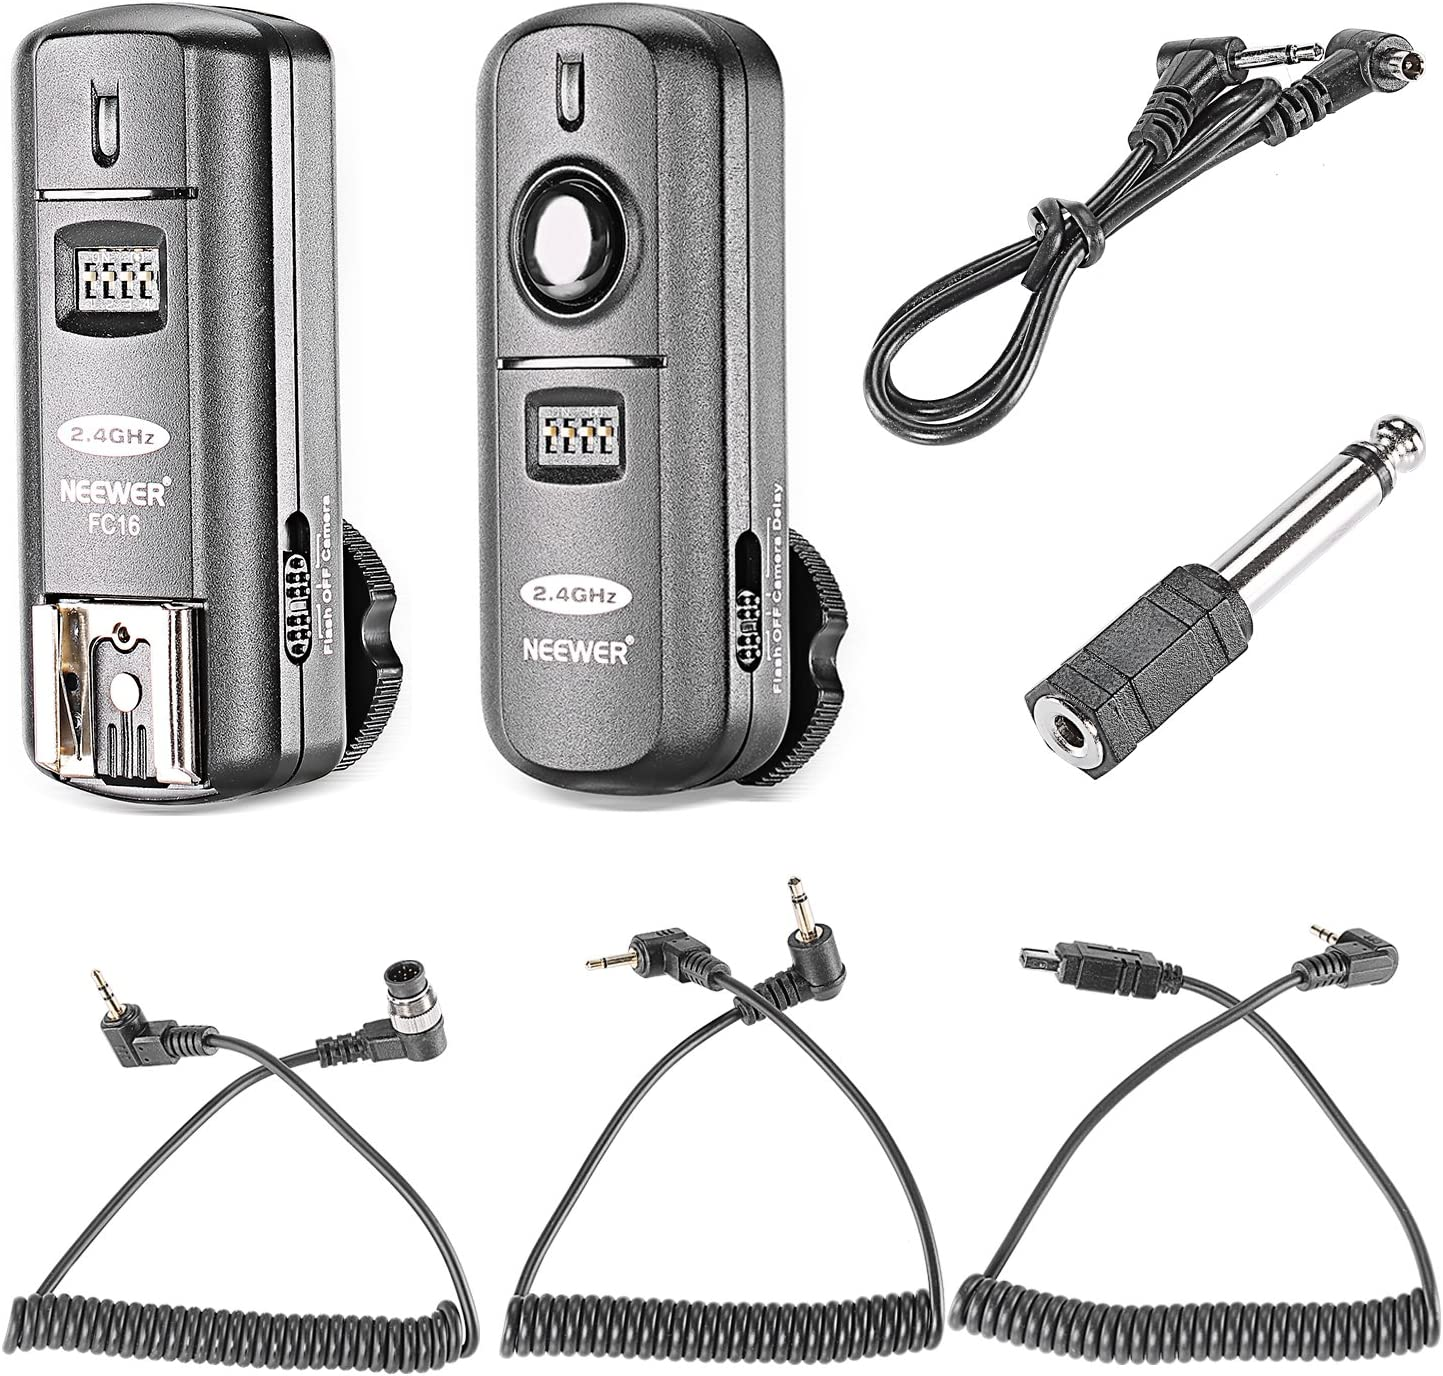 Neewer FC-16 Multi-Canal 2.4 GHz 3-IN-1 - Disparador Flash Inalámbrico/ Flash Estudio con Obturador Remoto para D7100 D7000 D5100 D5000 D3200 D3100 D600 D90 D800E D800 D700 D300S D300 D200 D4 D3S D3X